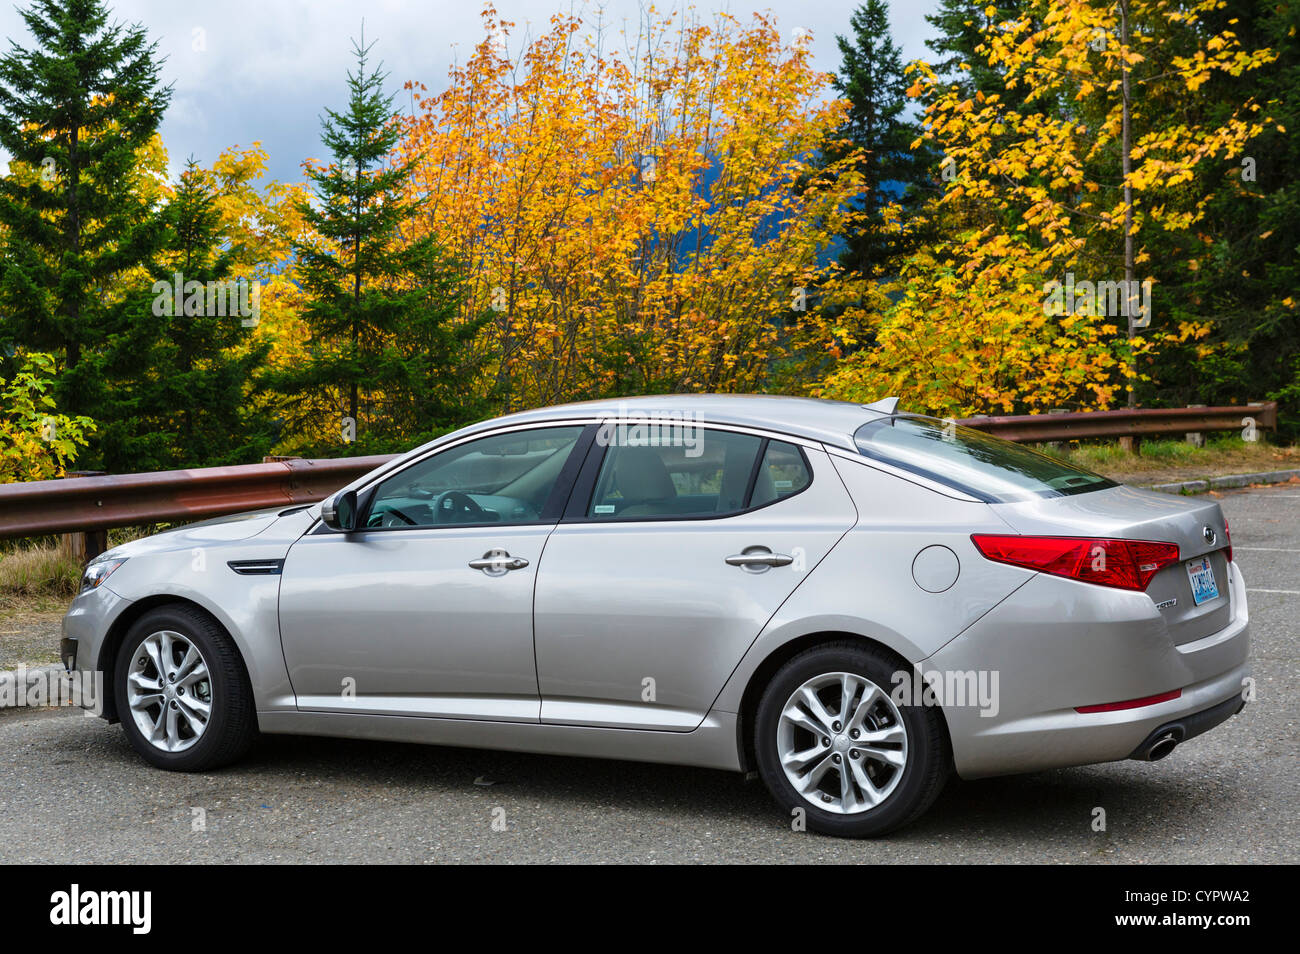 A 2012 model Kia Optima car, Washington state, USA - Stock Image